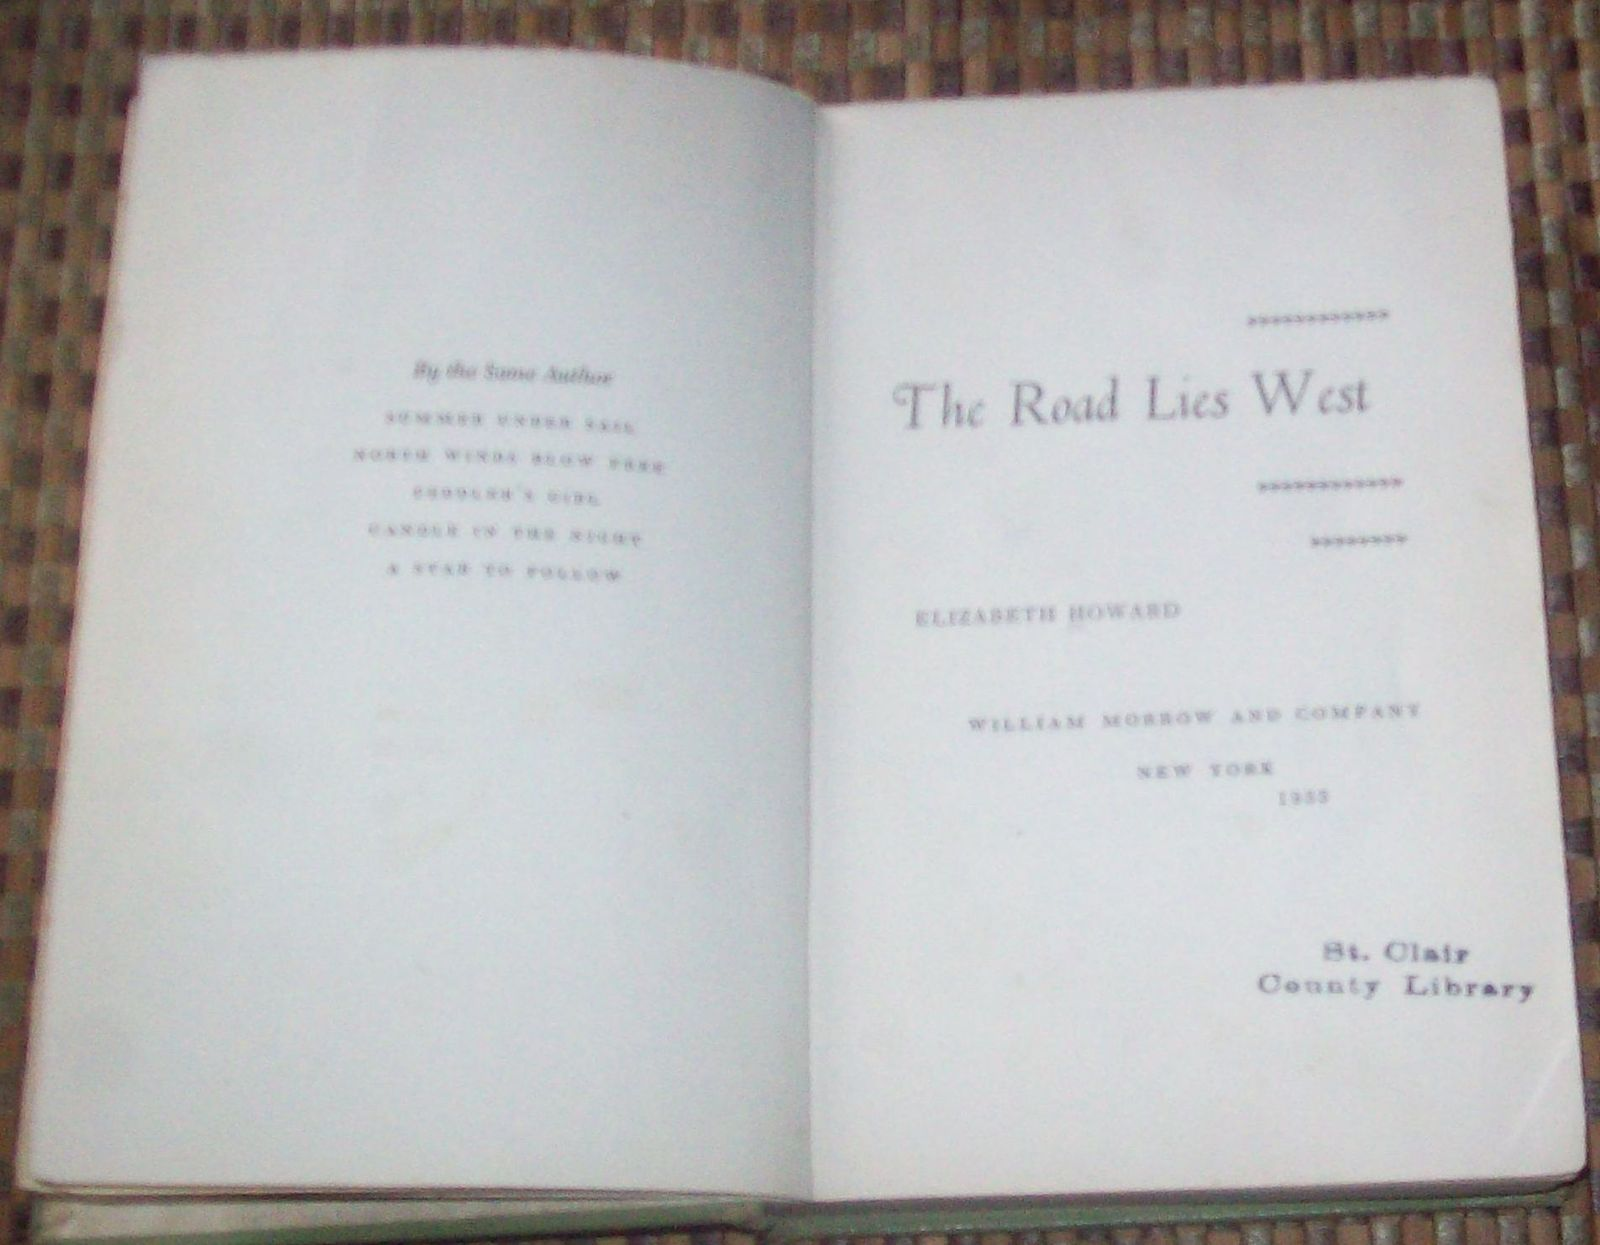 The Road Lies West by Elizabeth Howard 1955 HB Orphan in 1840s